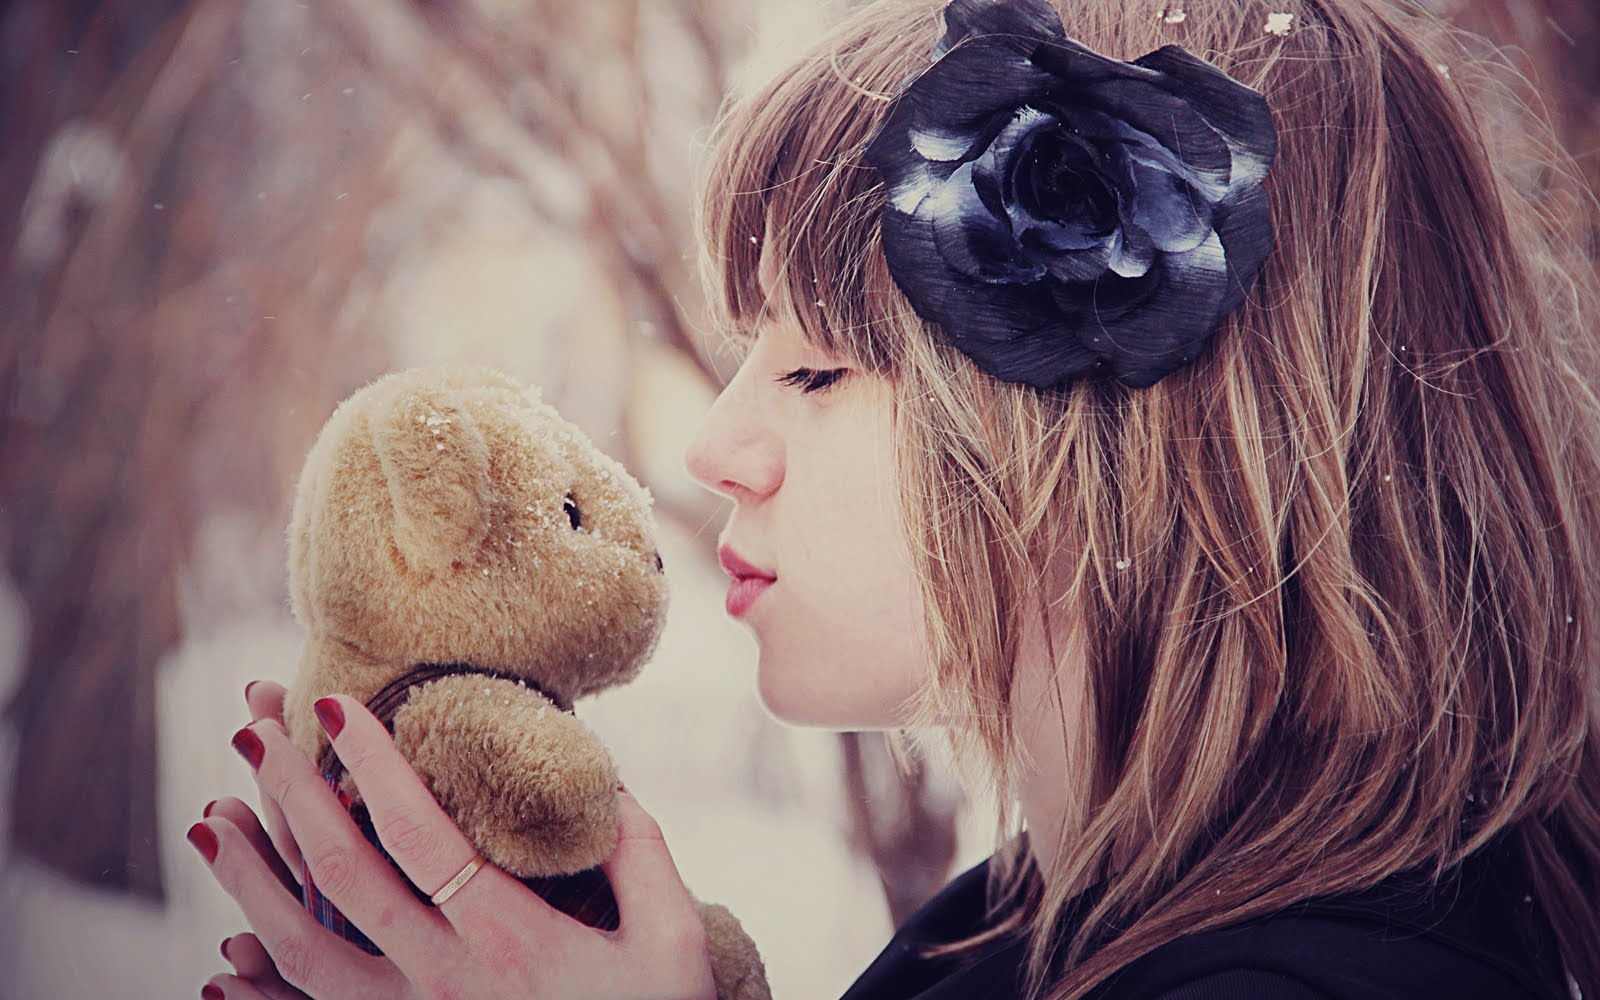 Hd Wallpaper Of Love Kiss : Mood Girl Kiss Bear Toy Flower Snow Winter HD Love Wallpaper Love Wallpapers Romantic ...